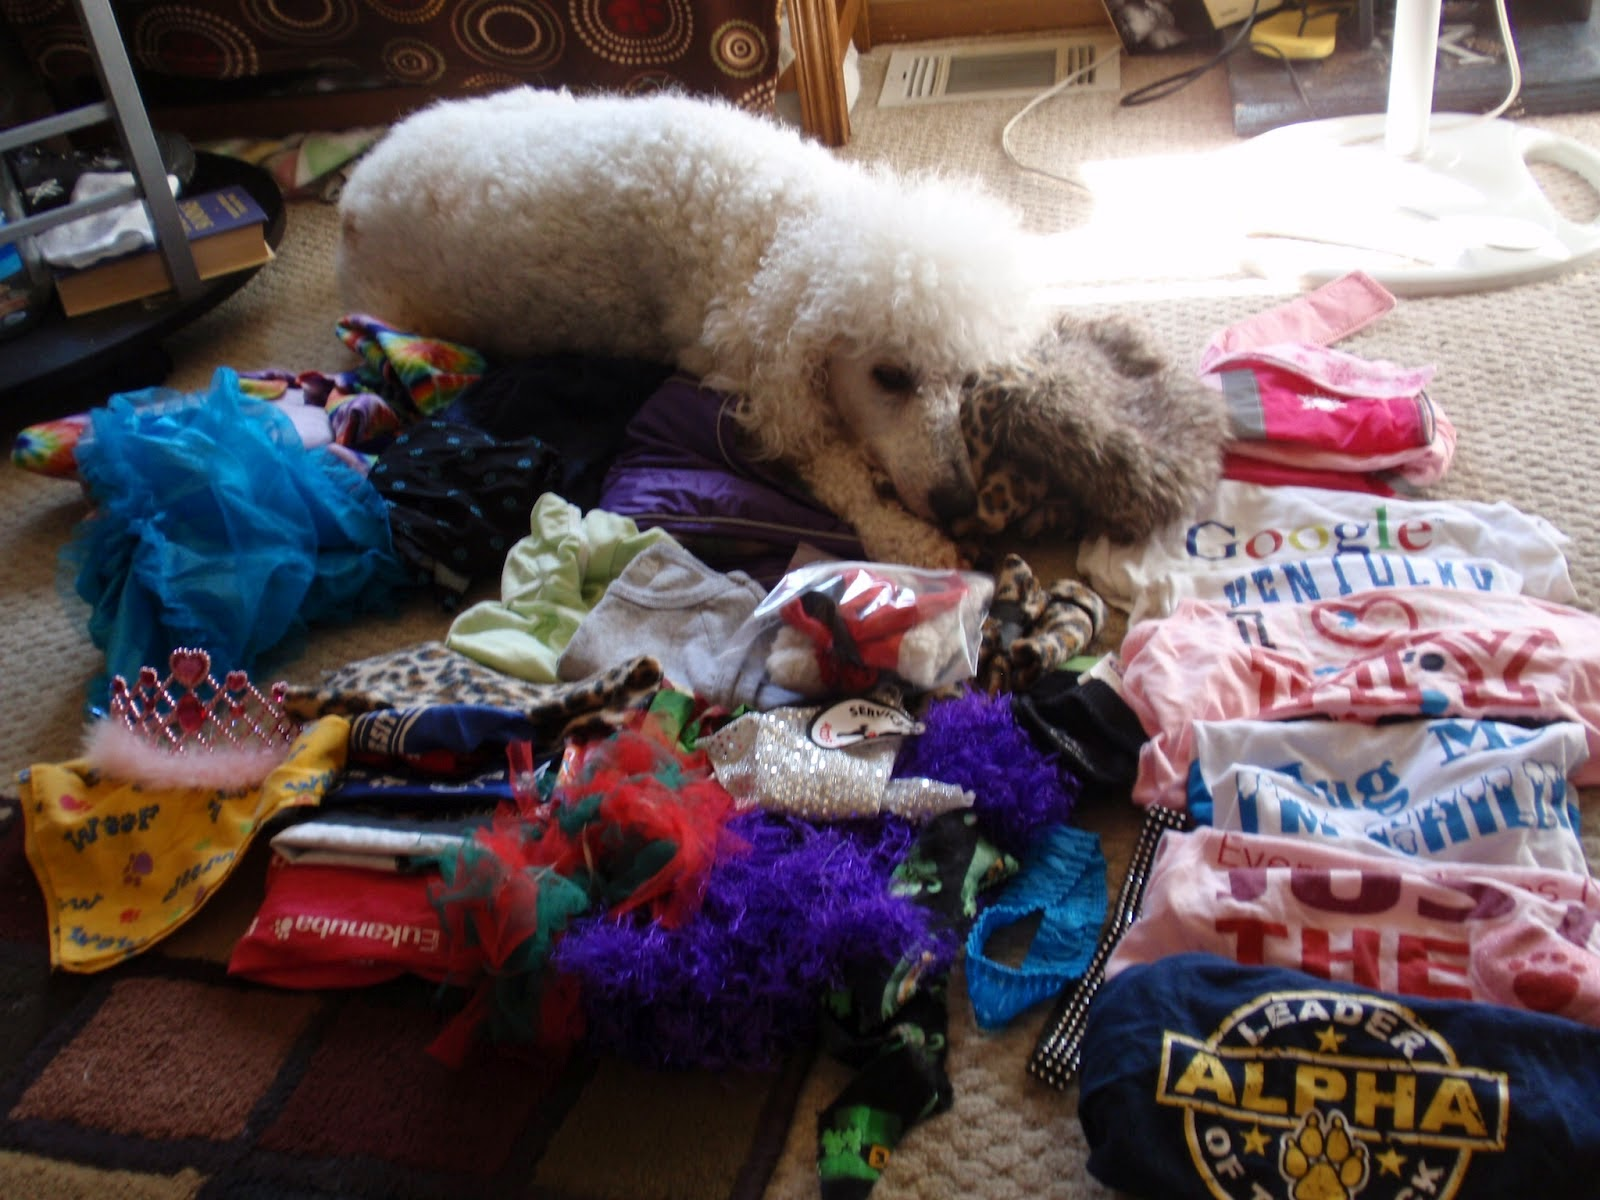 Poodle laying near a pile of clothing